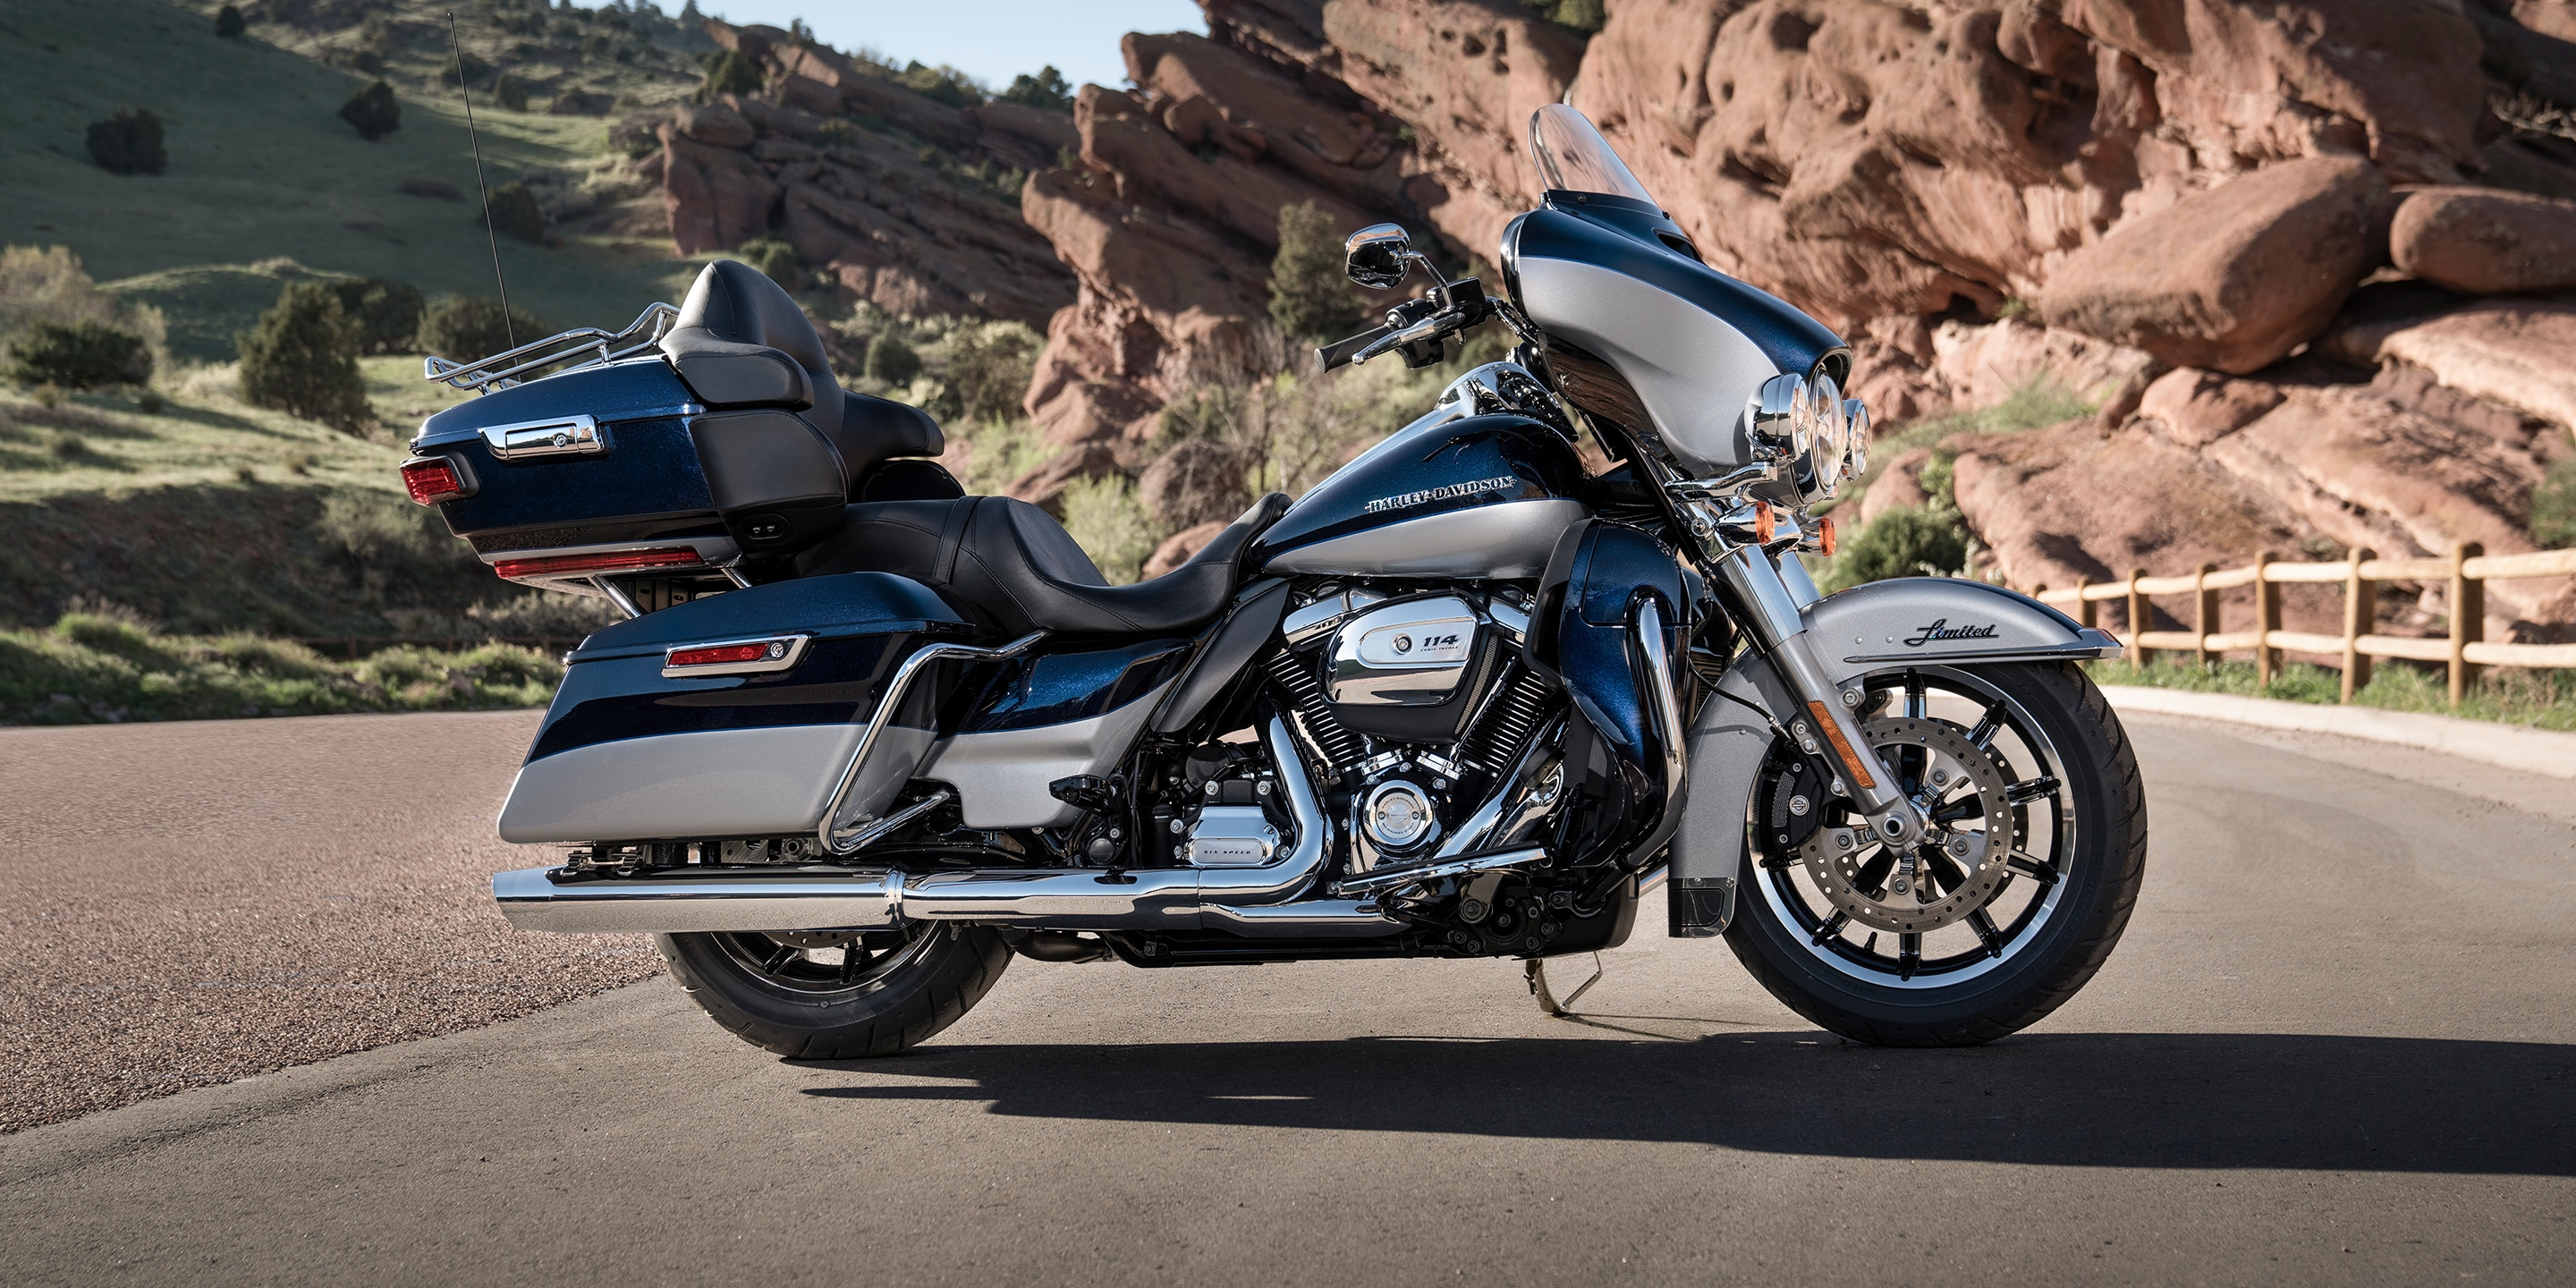 Harley Davidson Touring With Ultra Limited Low